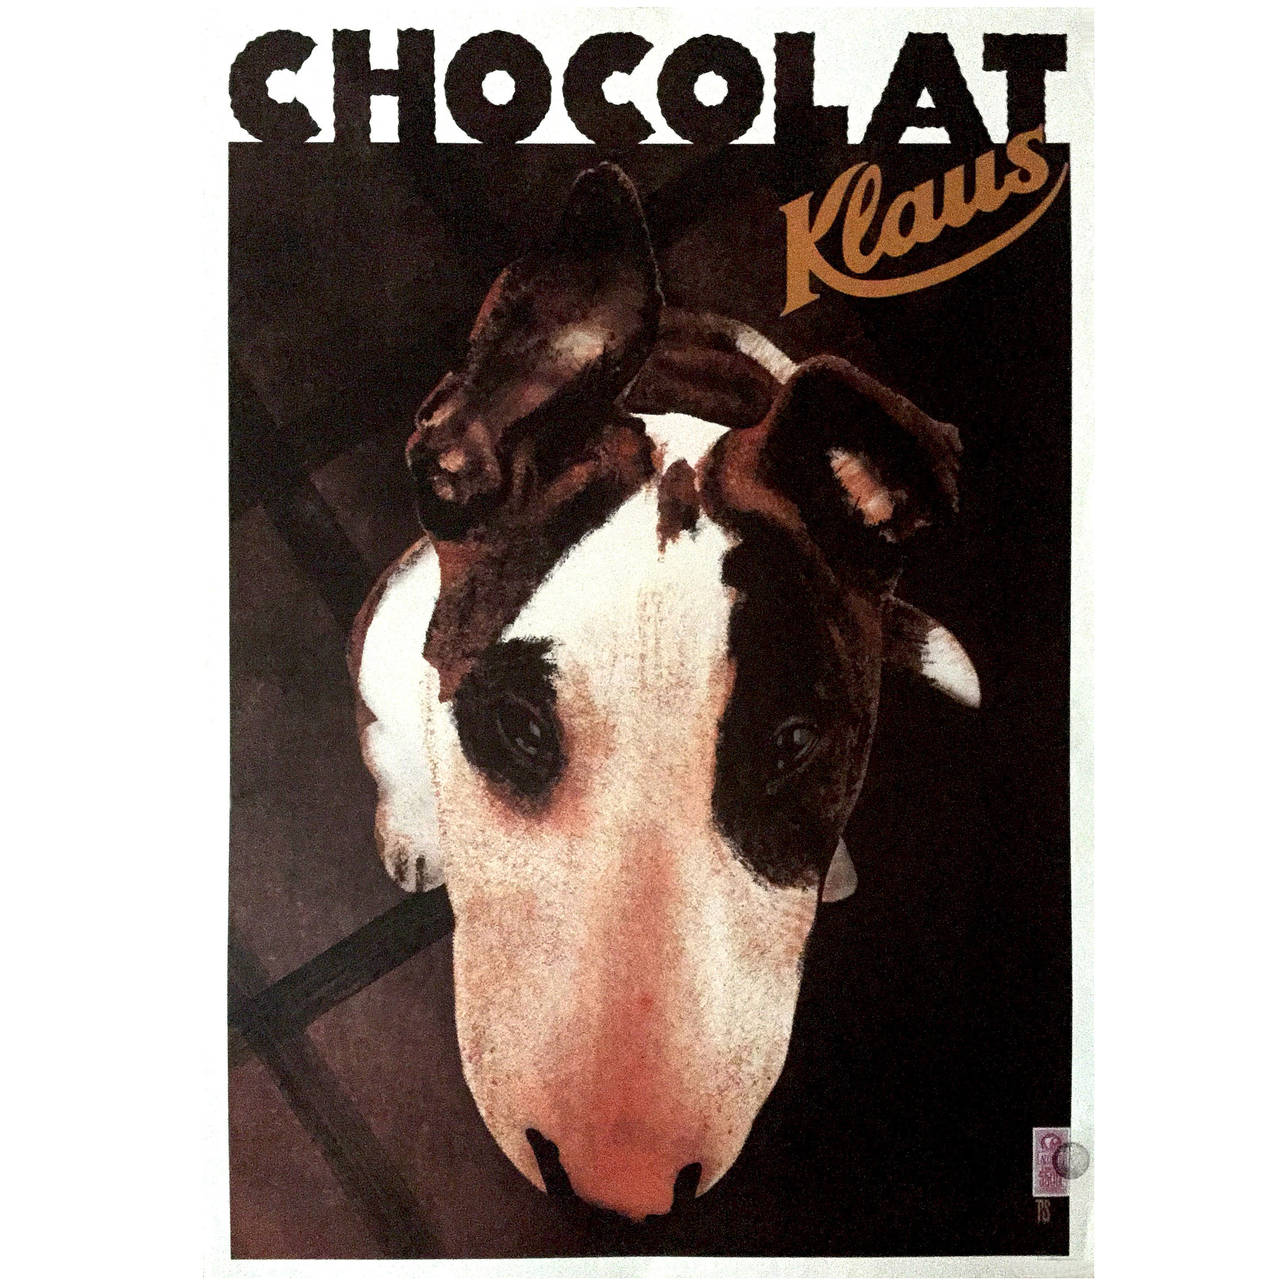 Modern French Poster for Chocolat Klaus Chocolate by Philippe Sommer